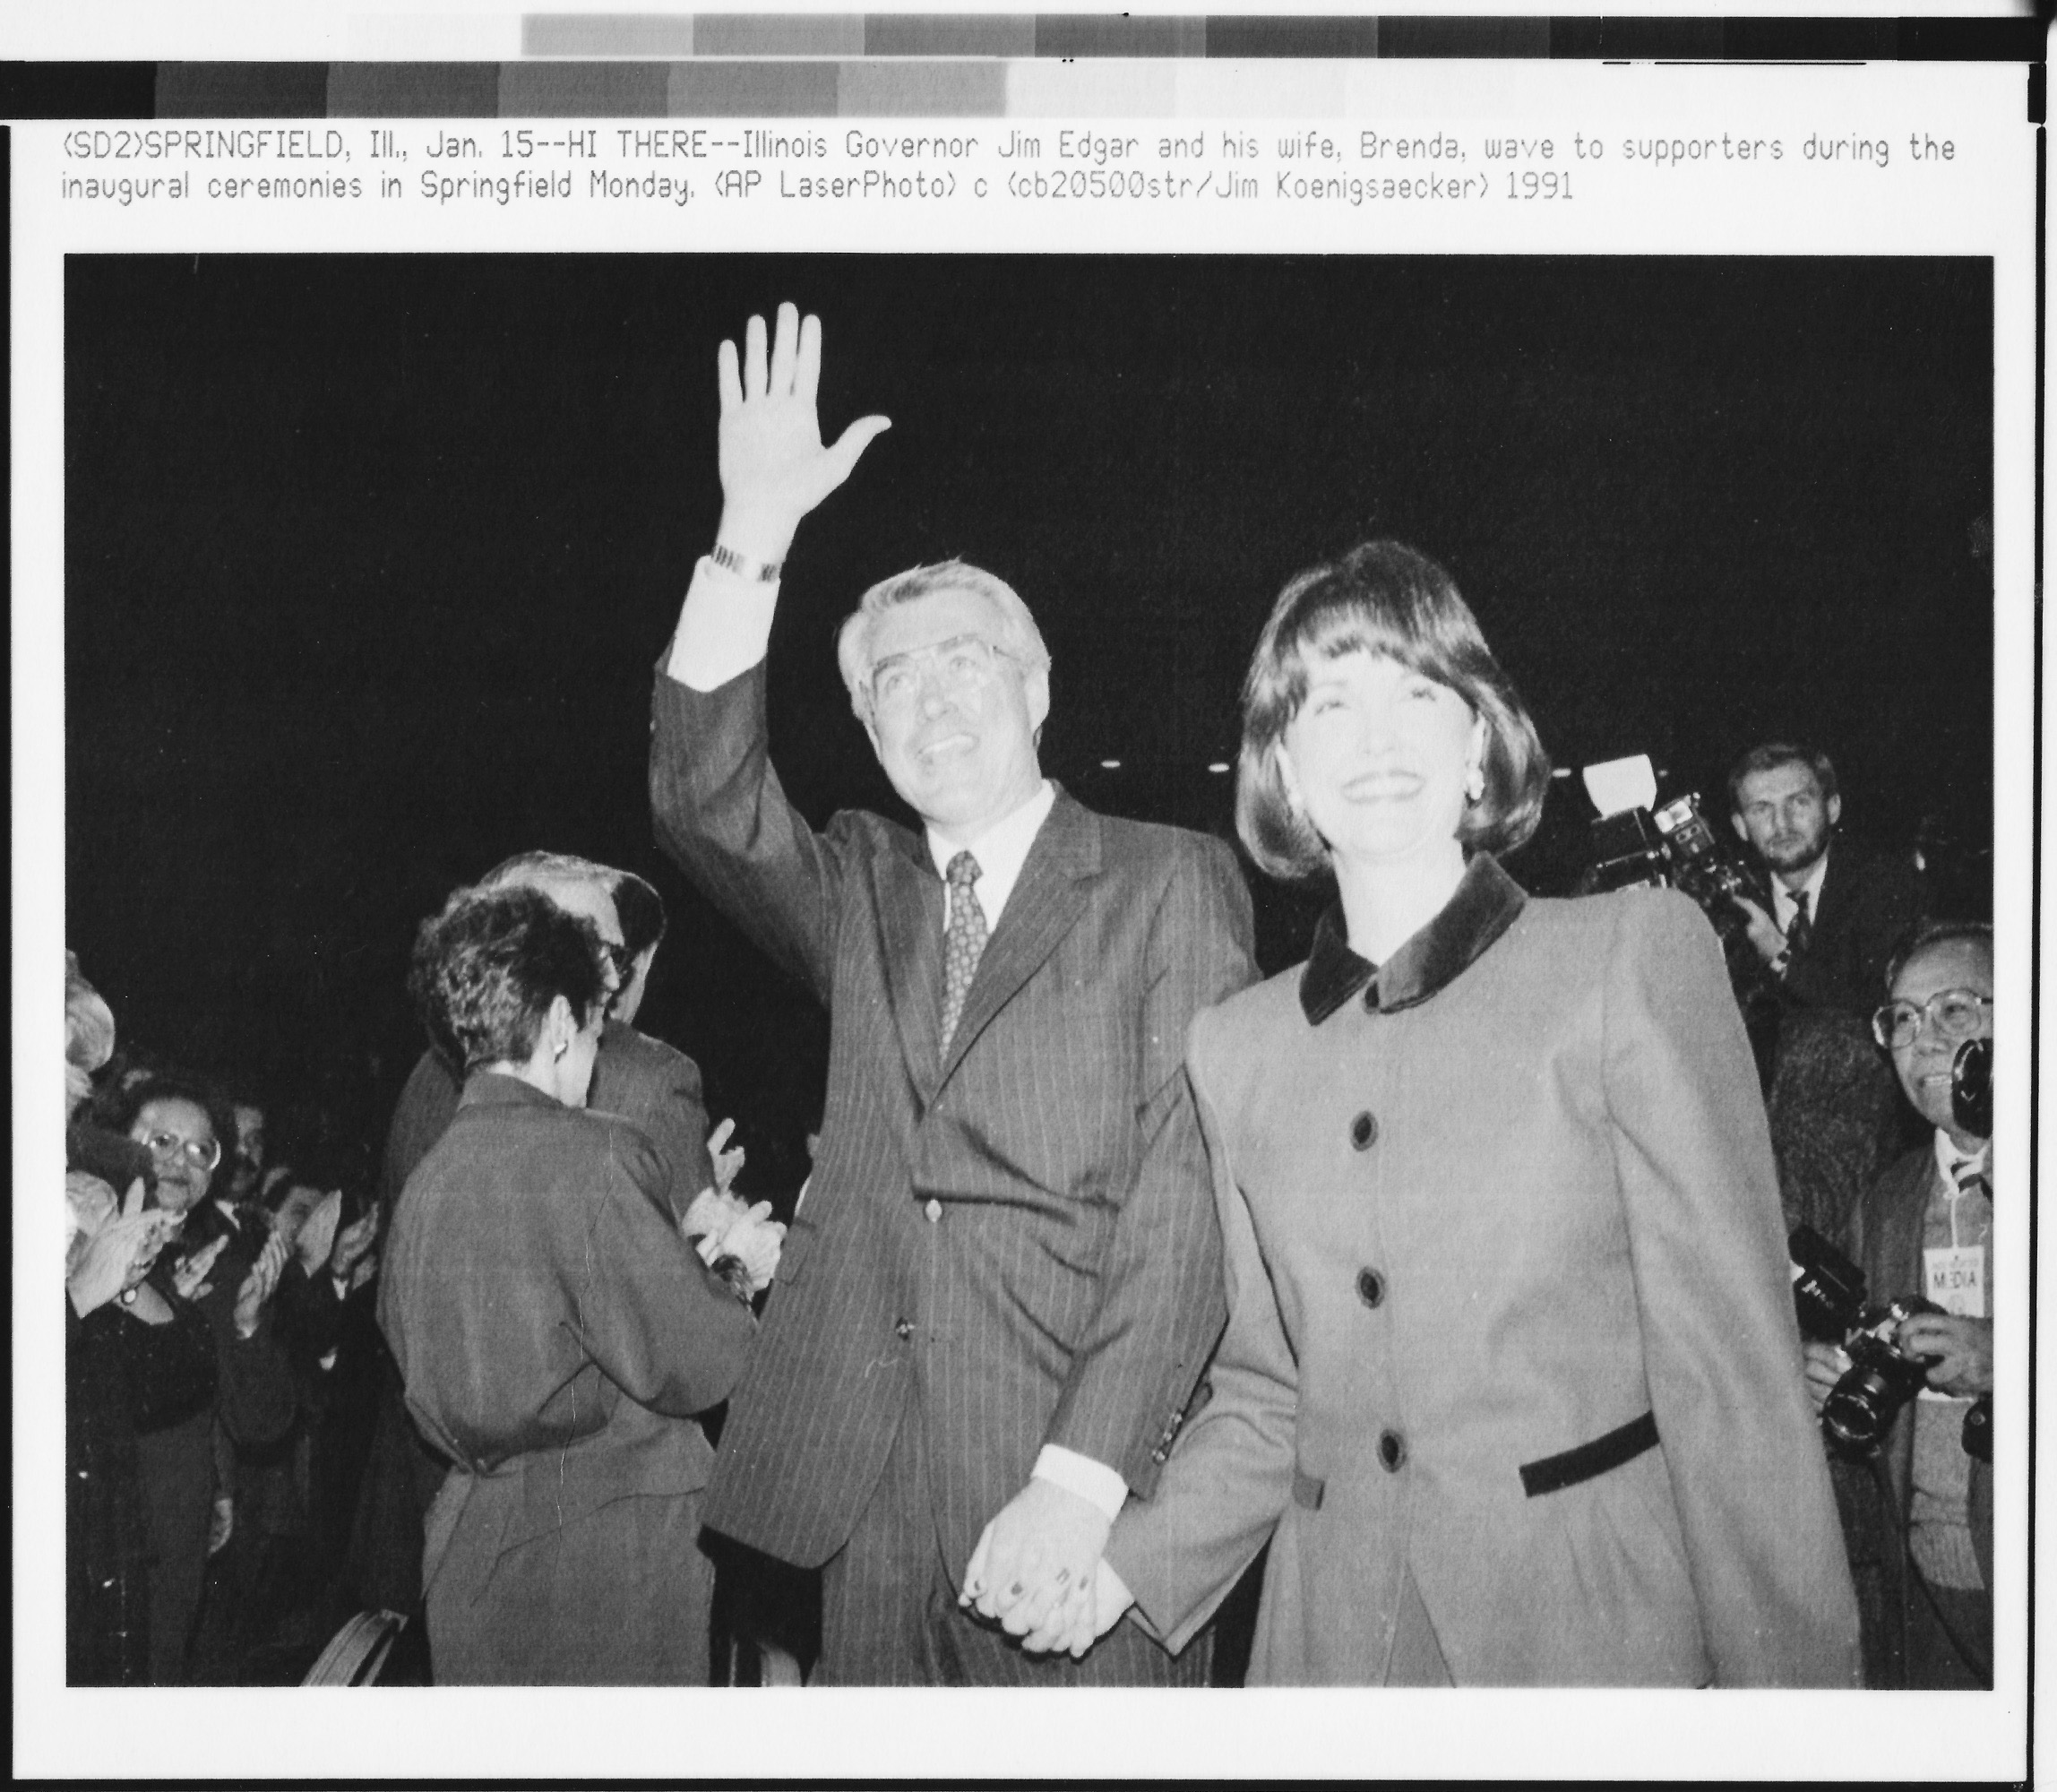 Illinois Governor Jim Edgar and his wife, Brenda, wave to supporters during inaugural ceremonies in Springfield, Illinois.